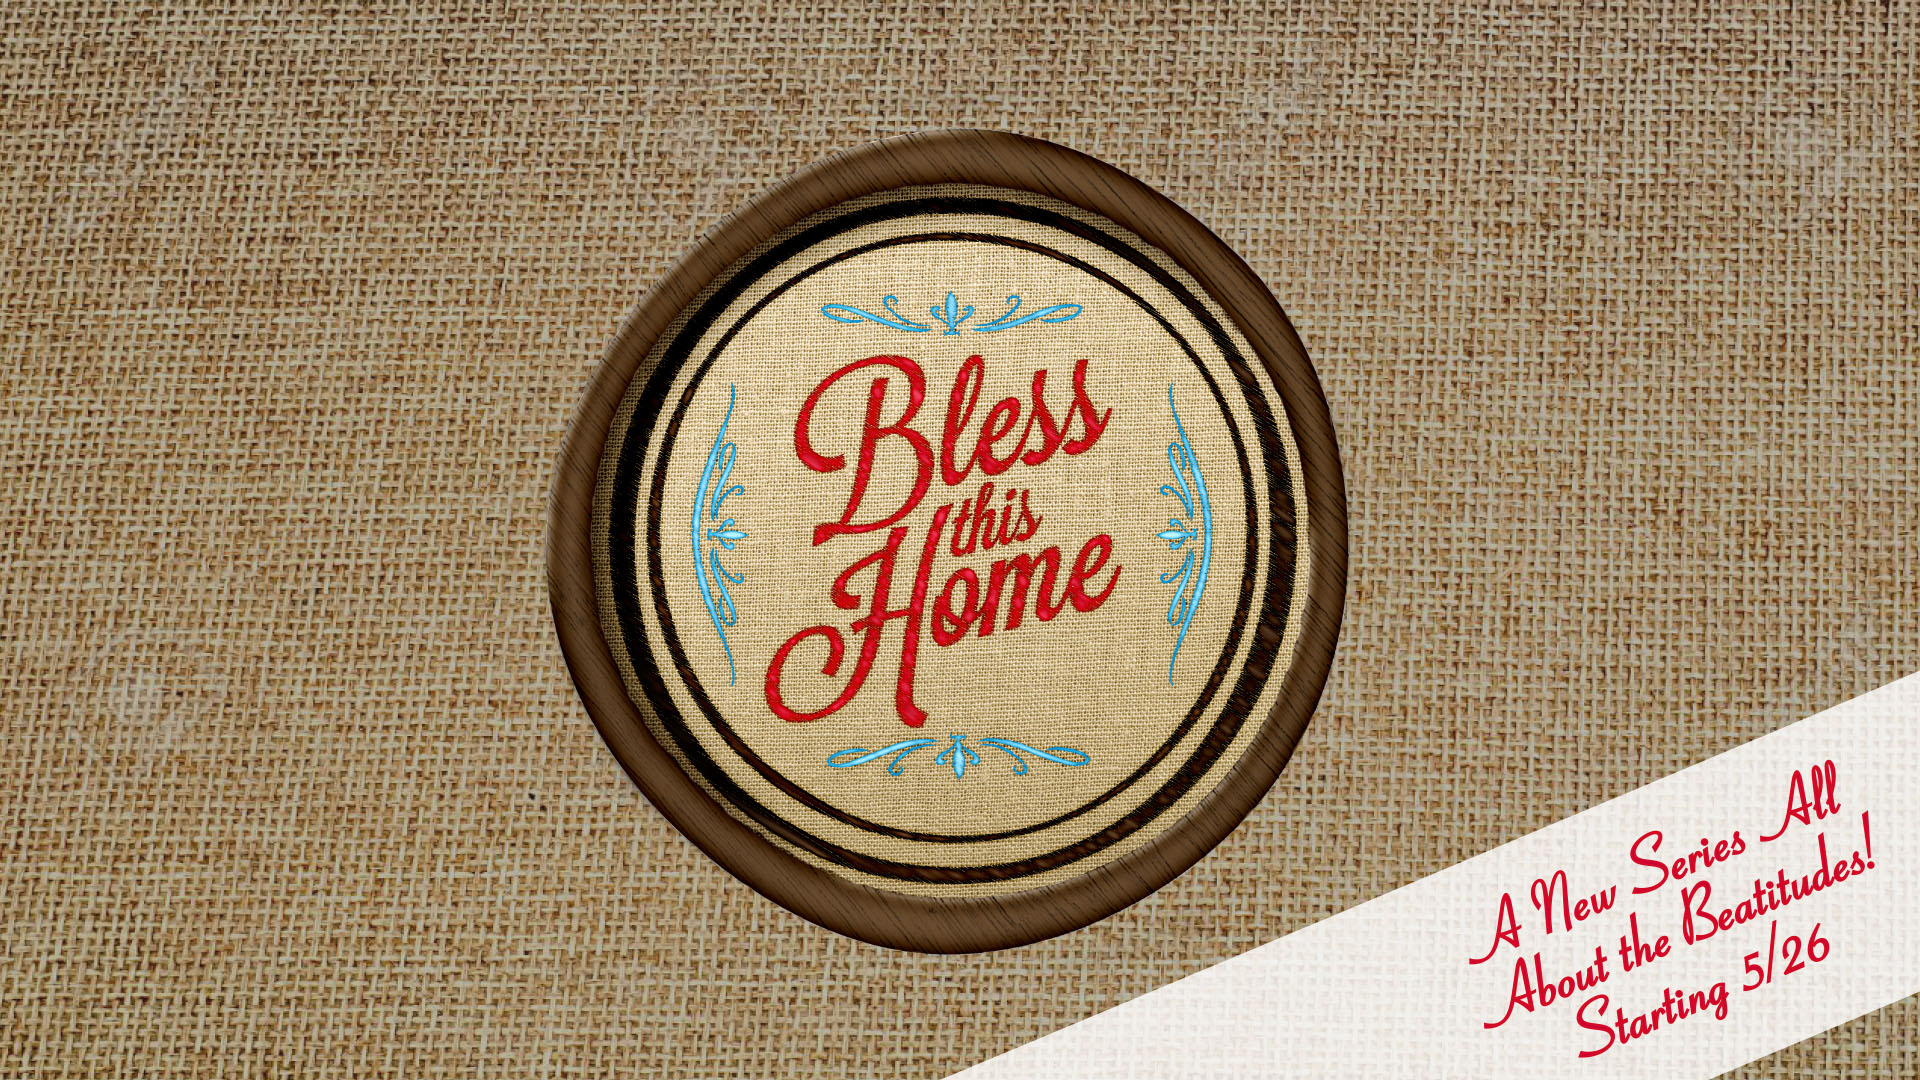 Bless this Home pt 6: Blessed are the Merciful